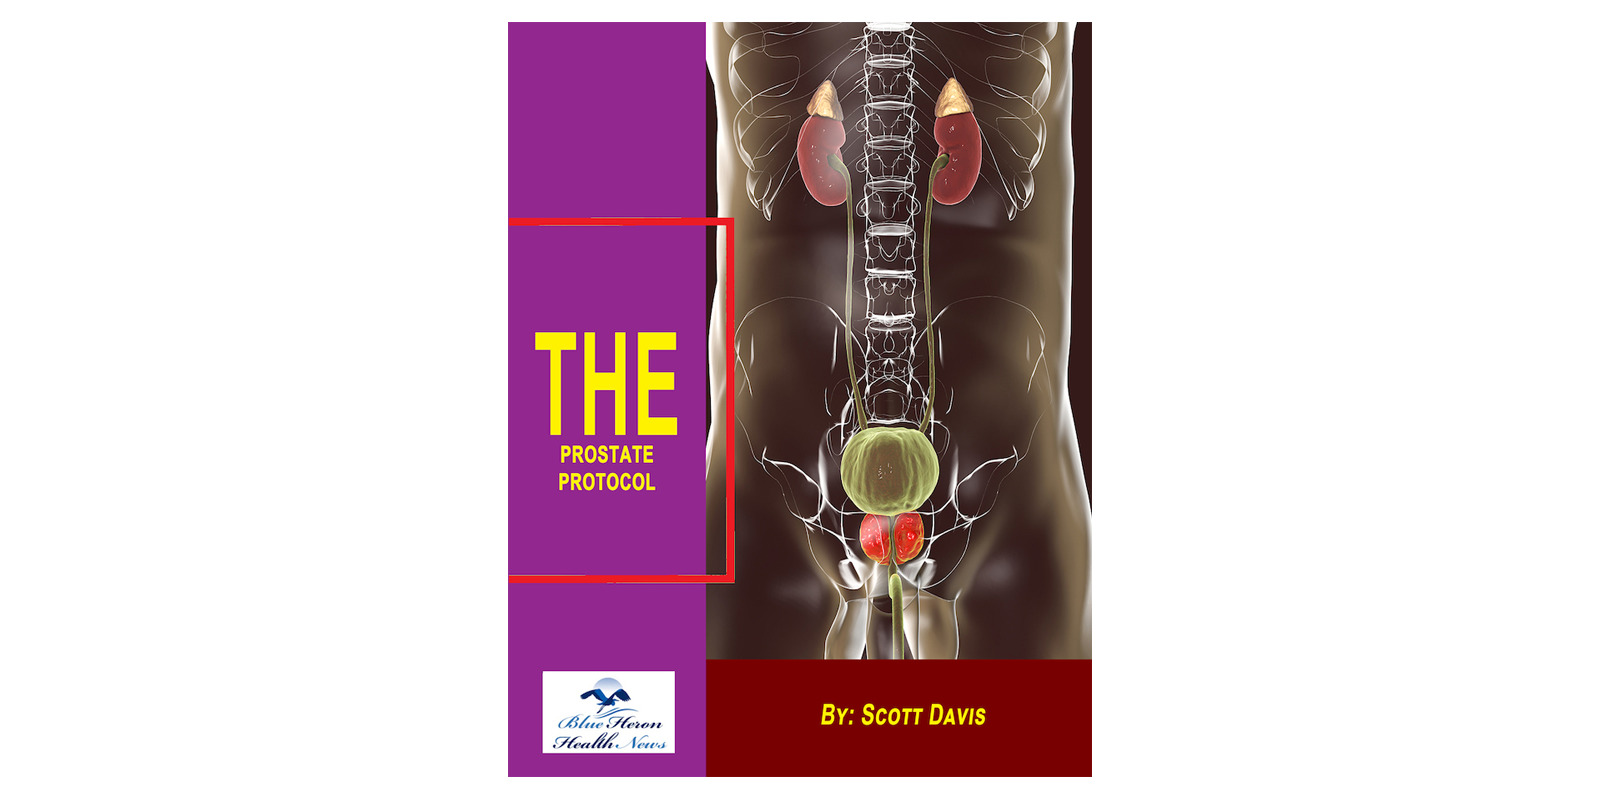 The Prostate Protocol reviews